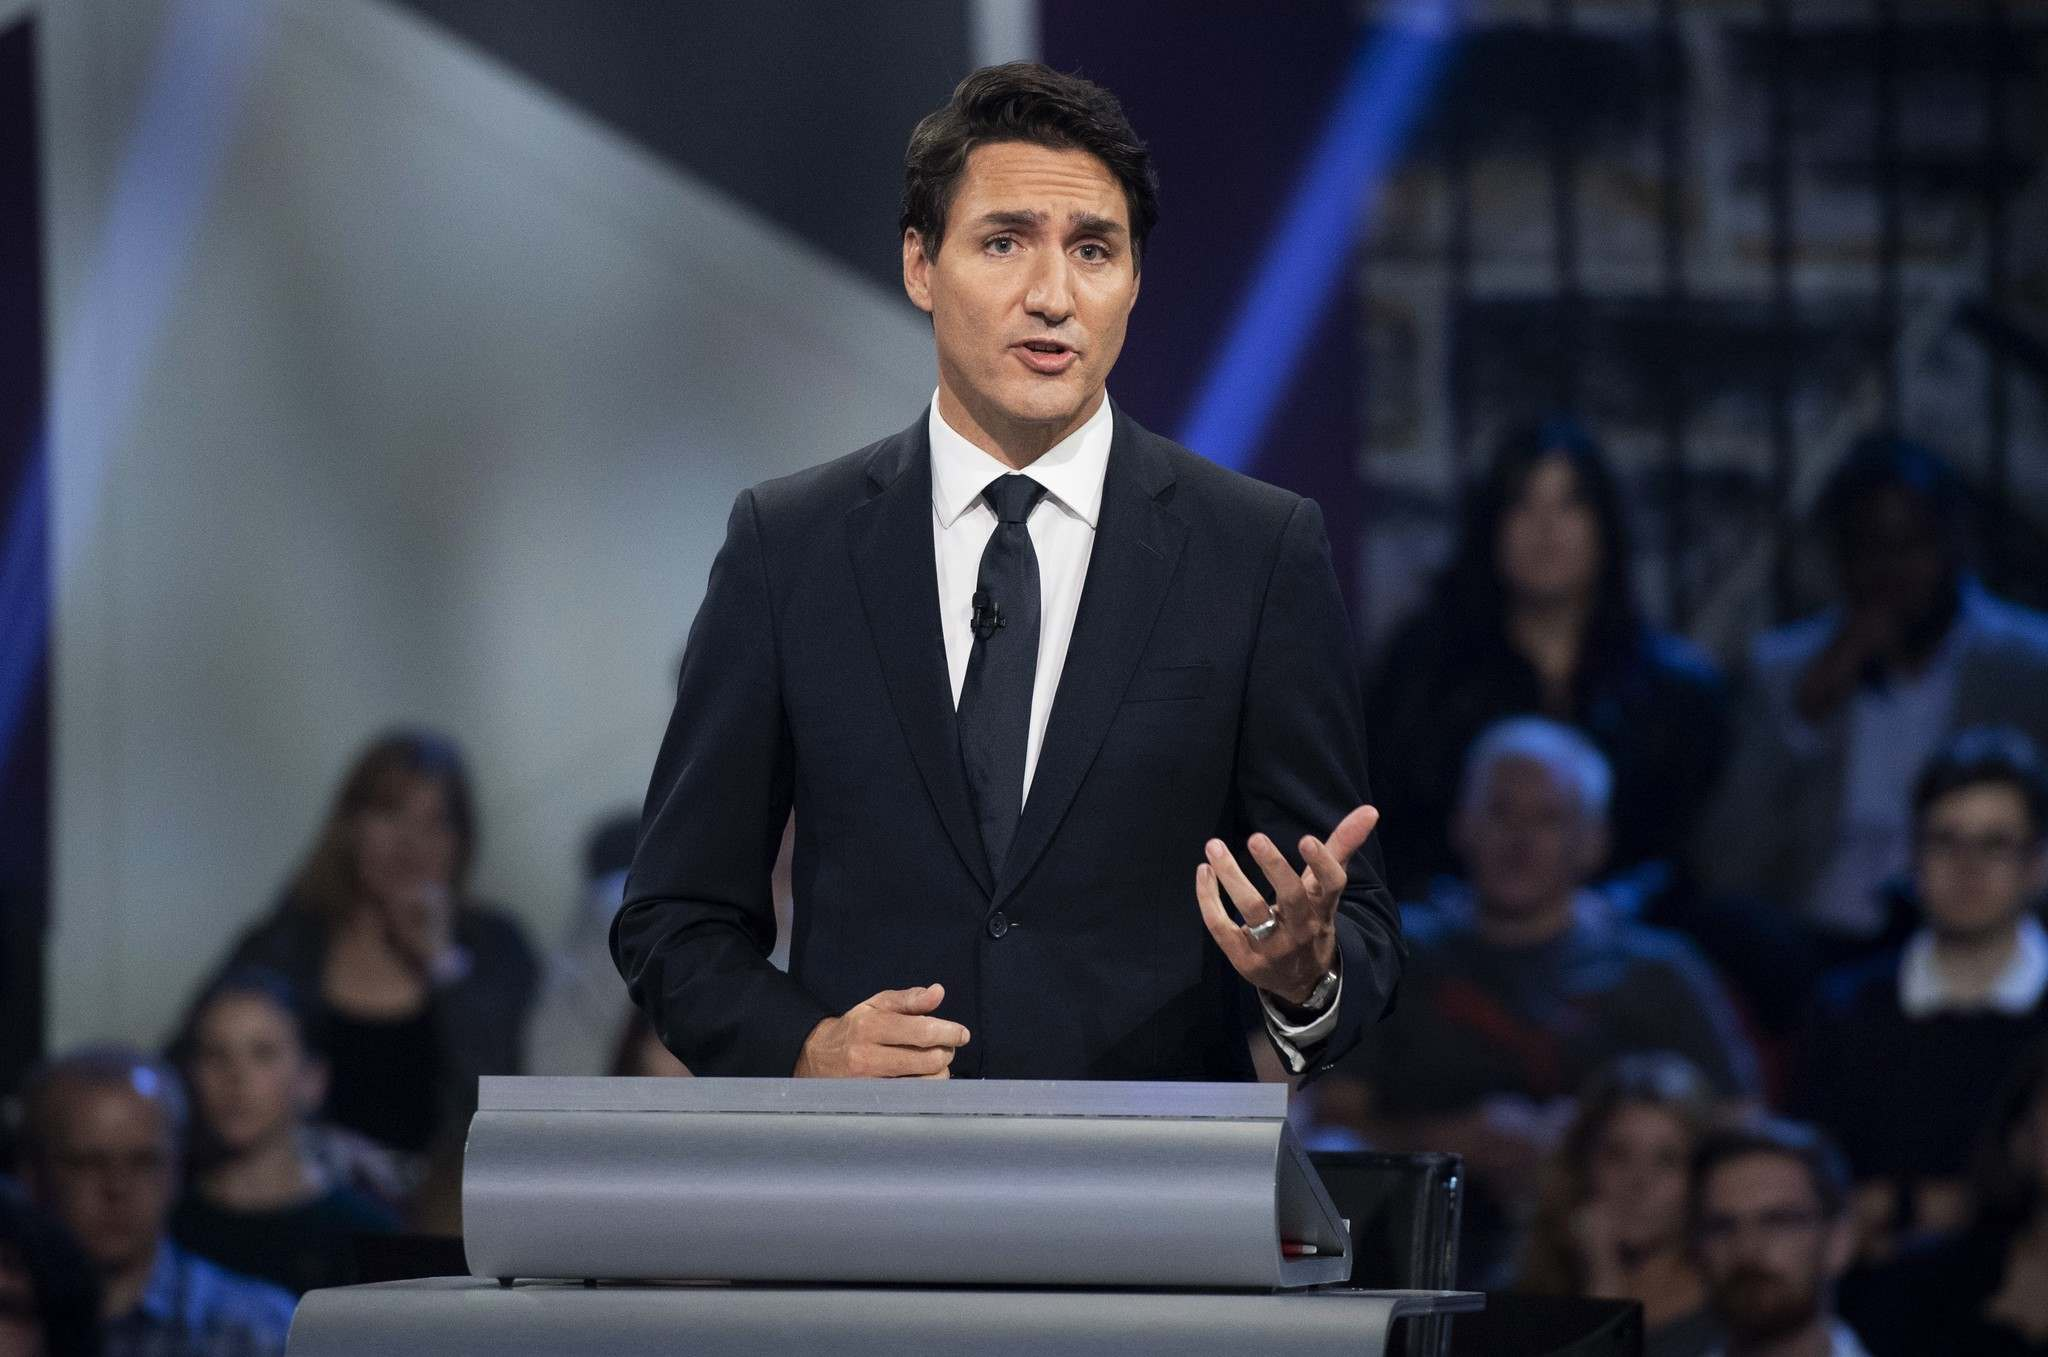 Sean Kilpatrick / The Canadian Press</p><p>Liberal leader Justin Trudeau responds to a question during the Federal leaders' debate in Gatineau, Que. on Monday October 7, 2019.</p>